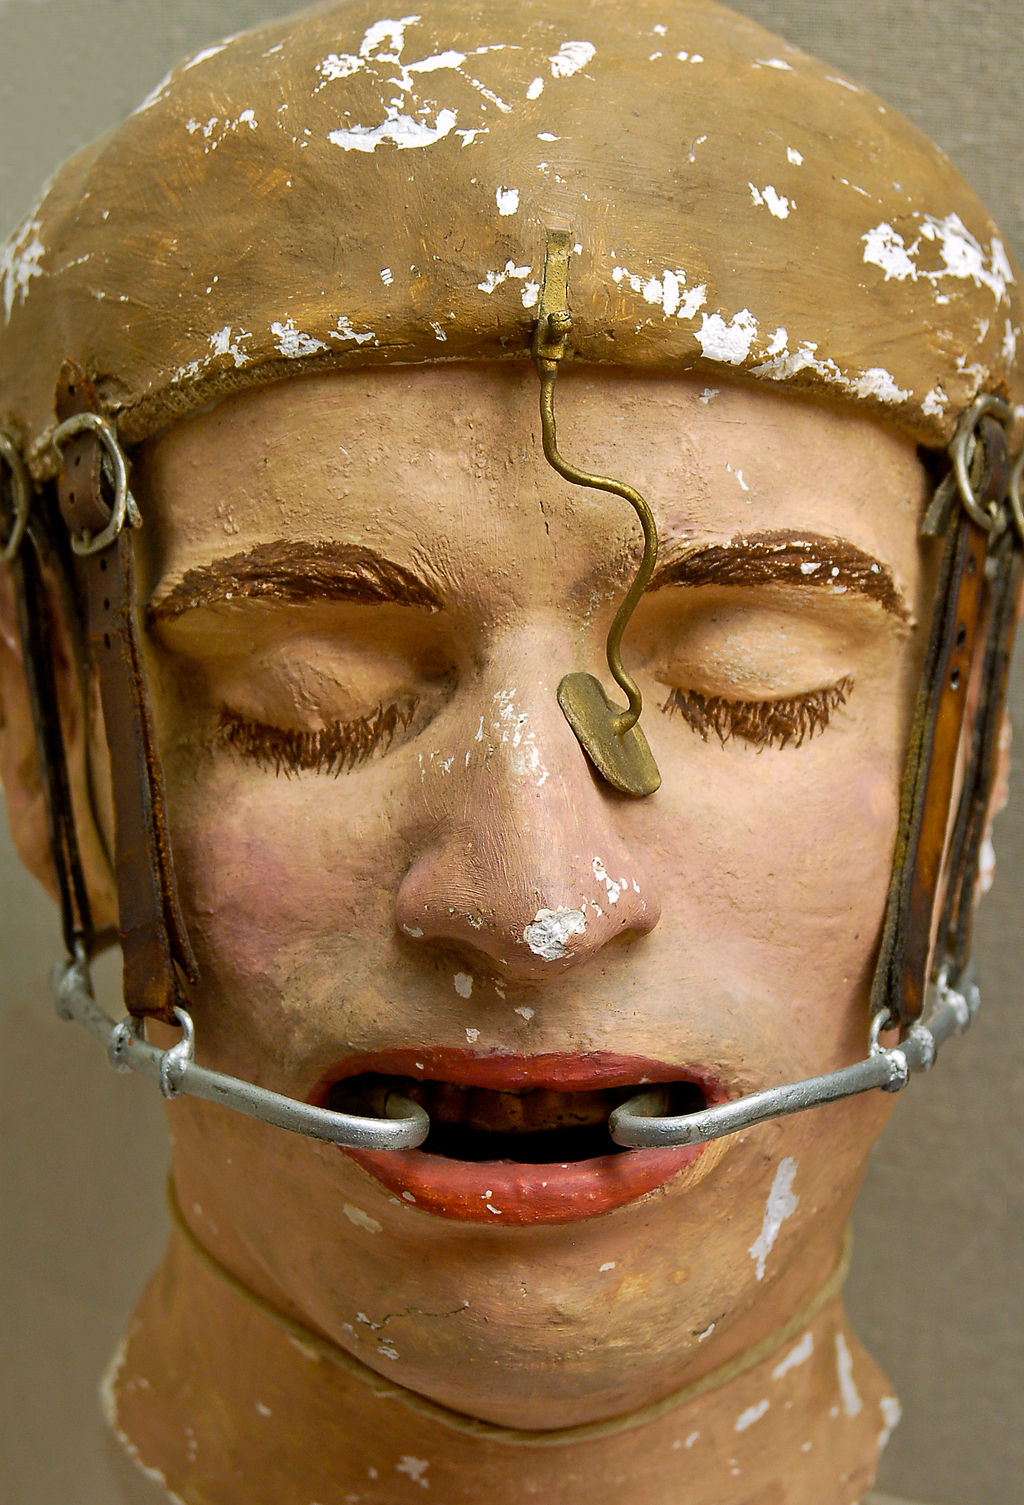 Old-style plastic surgery - A model of facial reconstruction based on what was used in World War I. But what about today in Latin America? Listen to today's Spanish audio podcast to find out more!